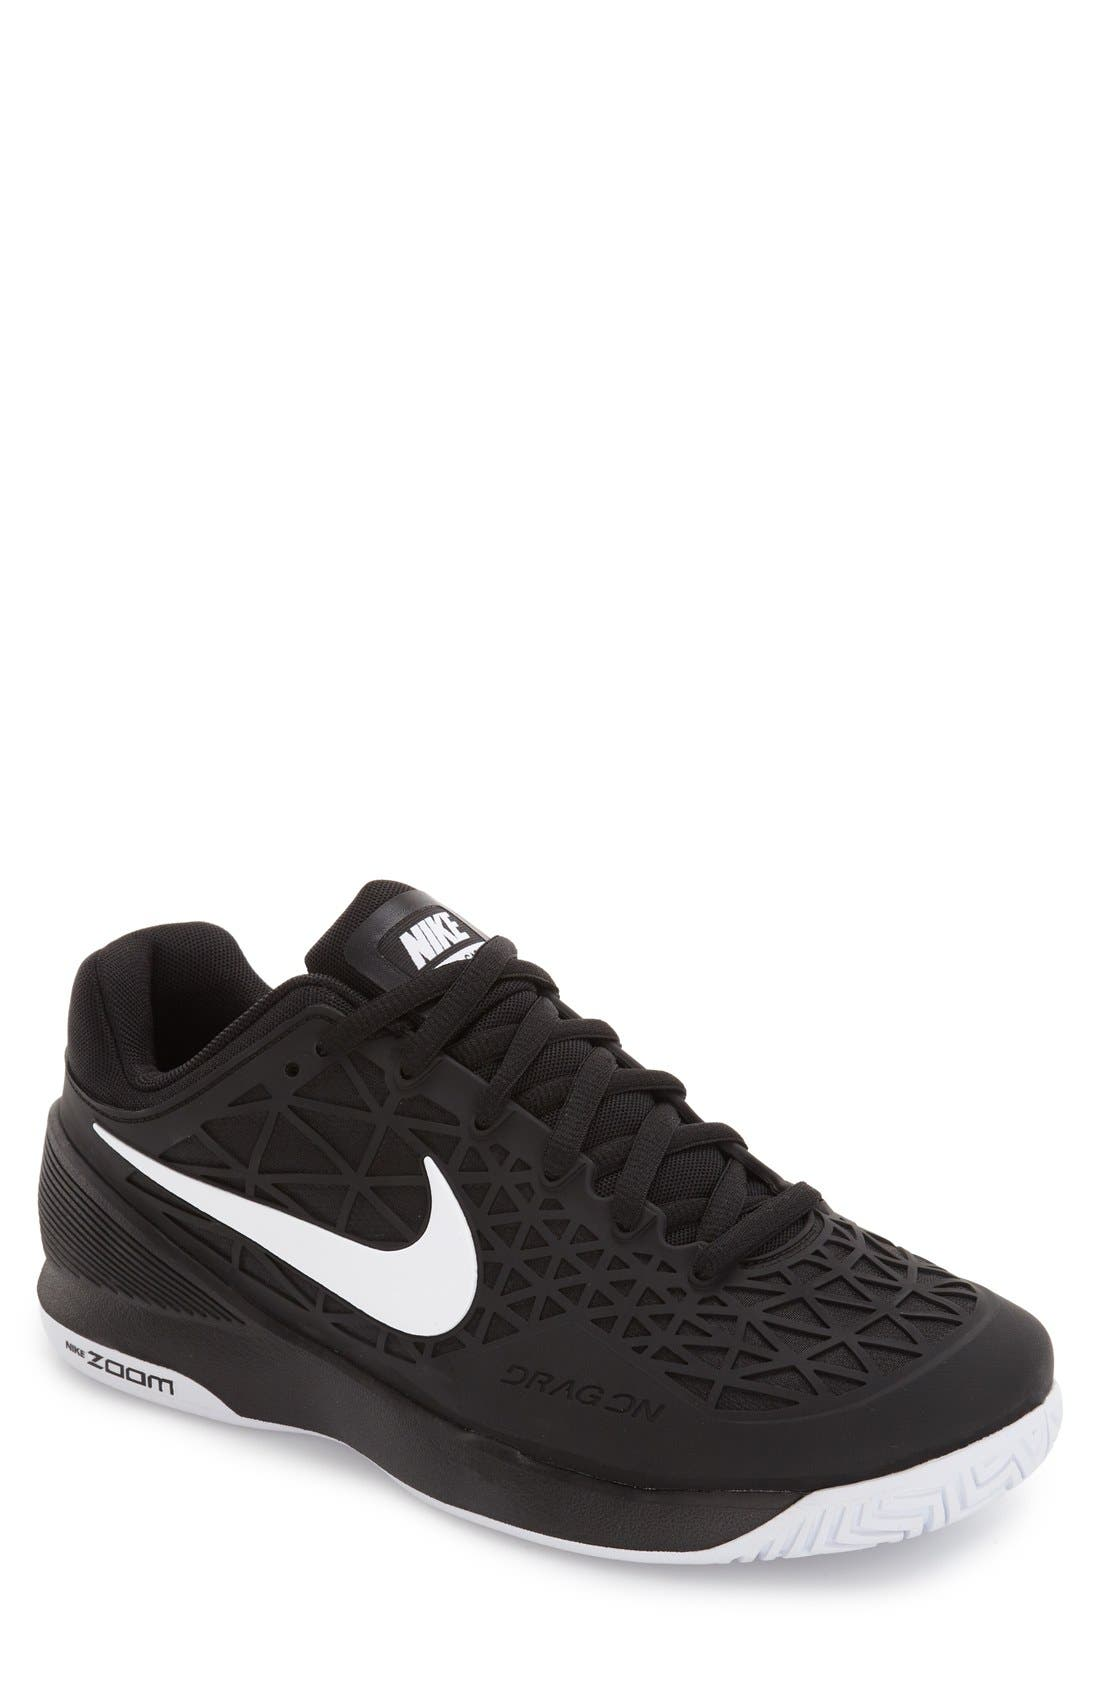 Nike Air Max Breathe Cage Mens Tennis Shoe 554875 100